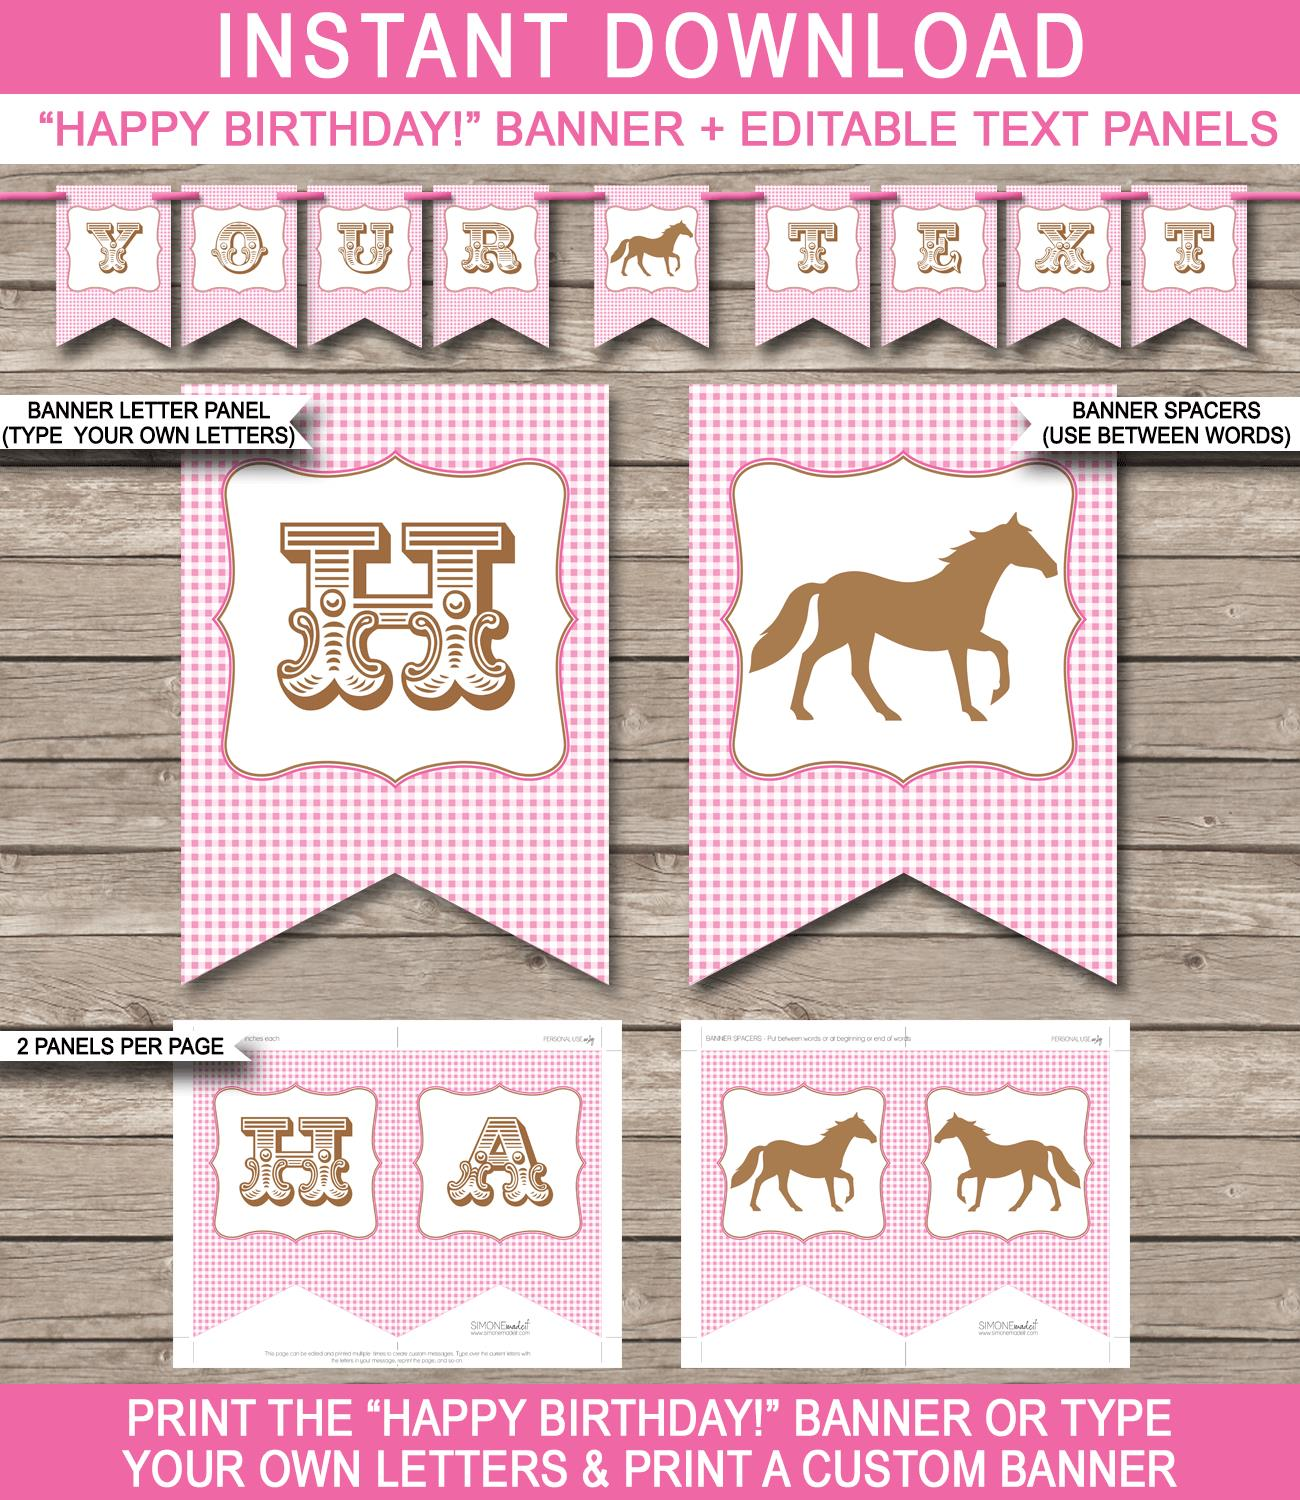 birthday banner templates free printable ; Horse-Pony-Banner-Editable-and-Printable-Template-pink